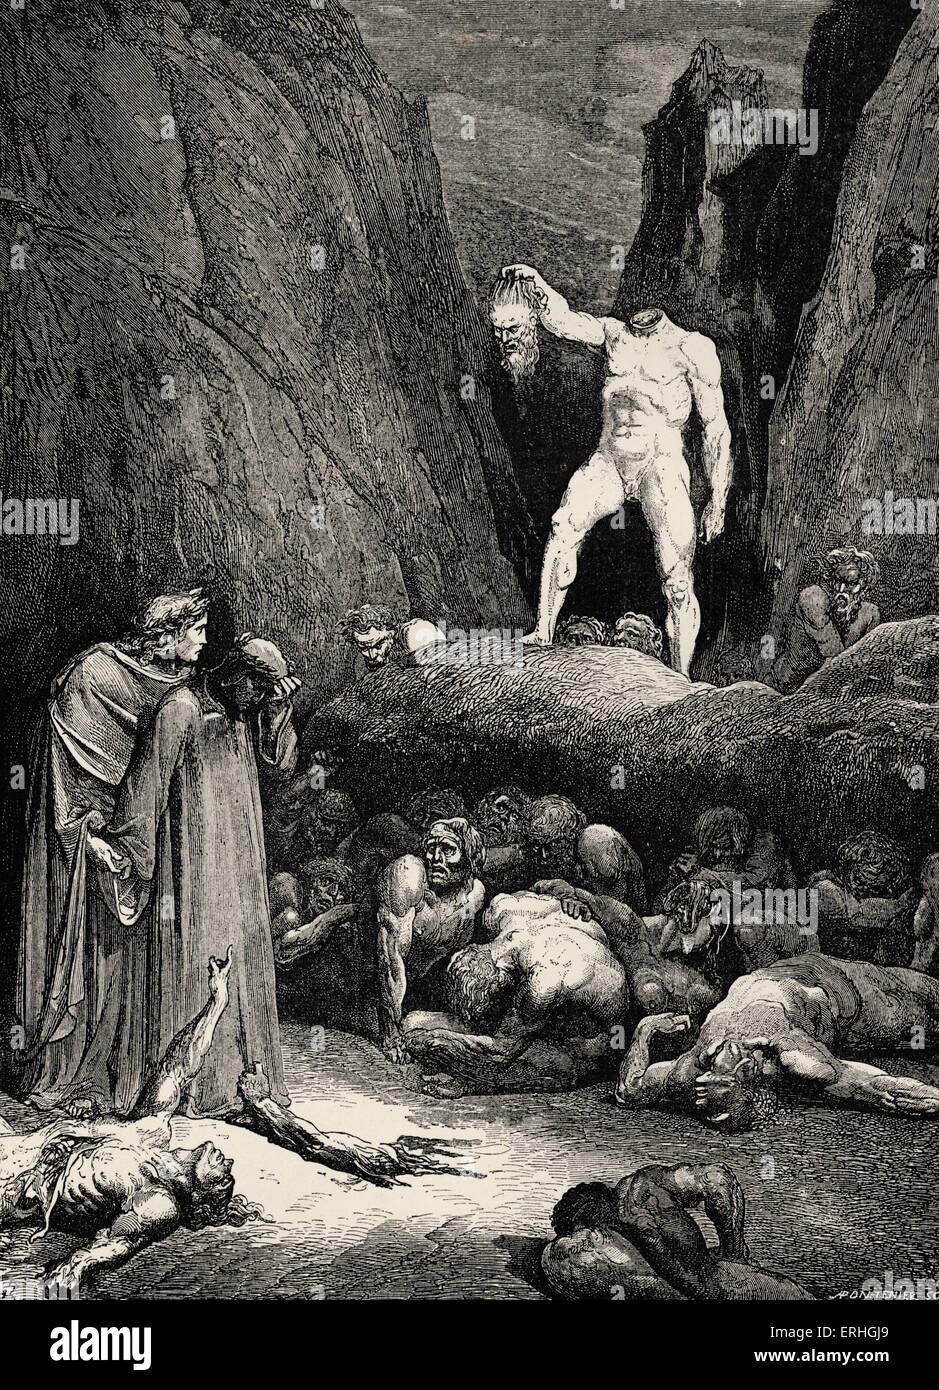 a review of dantes canto xxviii Gustave doré - dante's divine comedy, inferno canto xxviii, the severed head of bertran de born speaks - 1866 in the final line of canto xxviii the sinner bertran de born holds up his cut-off head by the hair and says 'in me you may observe fit punishment' ('così s'oserva in me lo contrapasso', inf xxviii, 142.